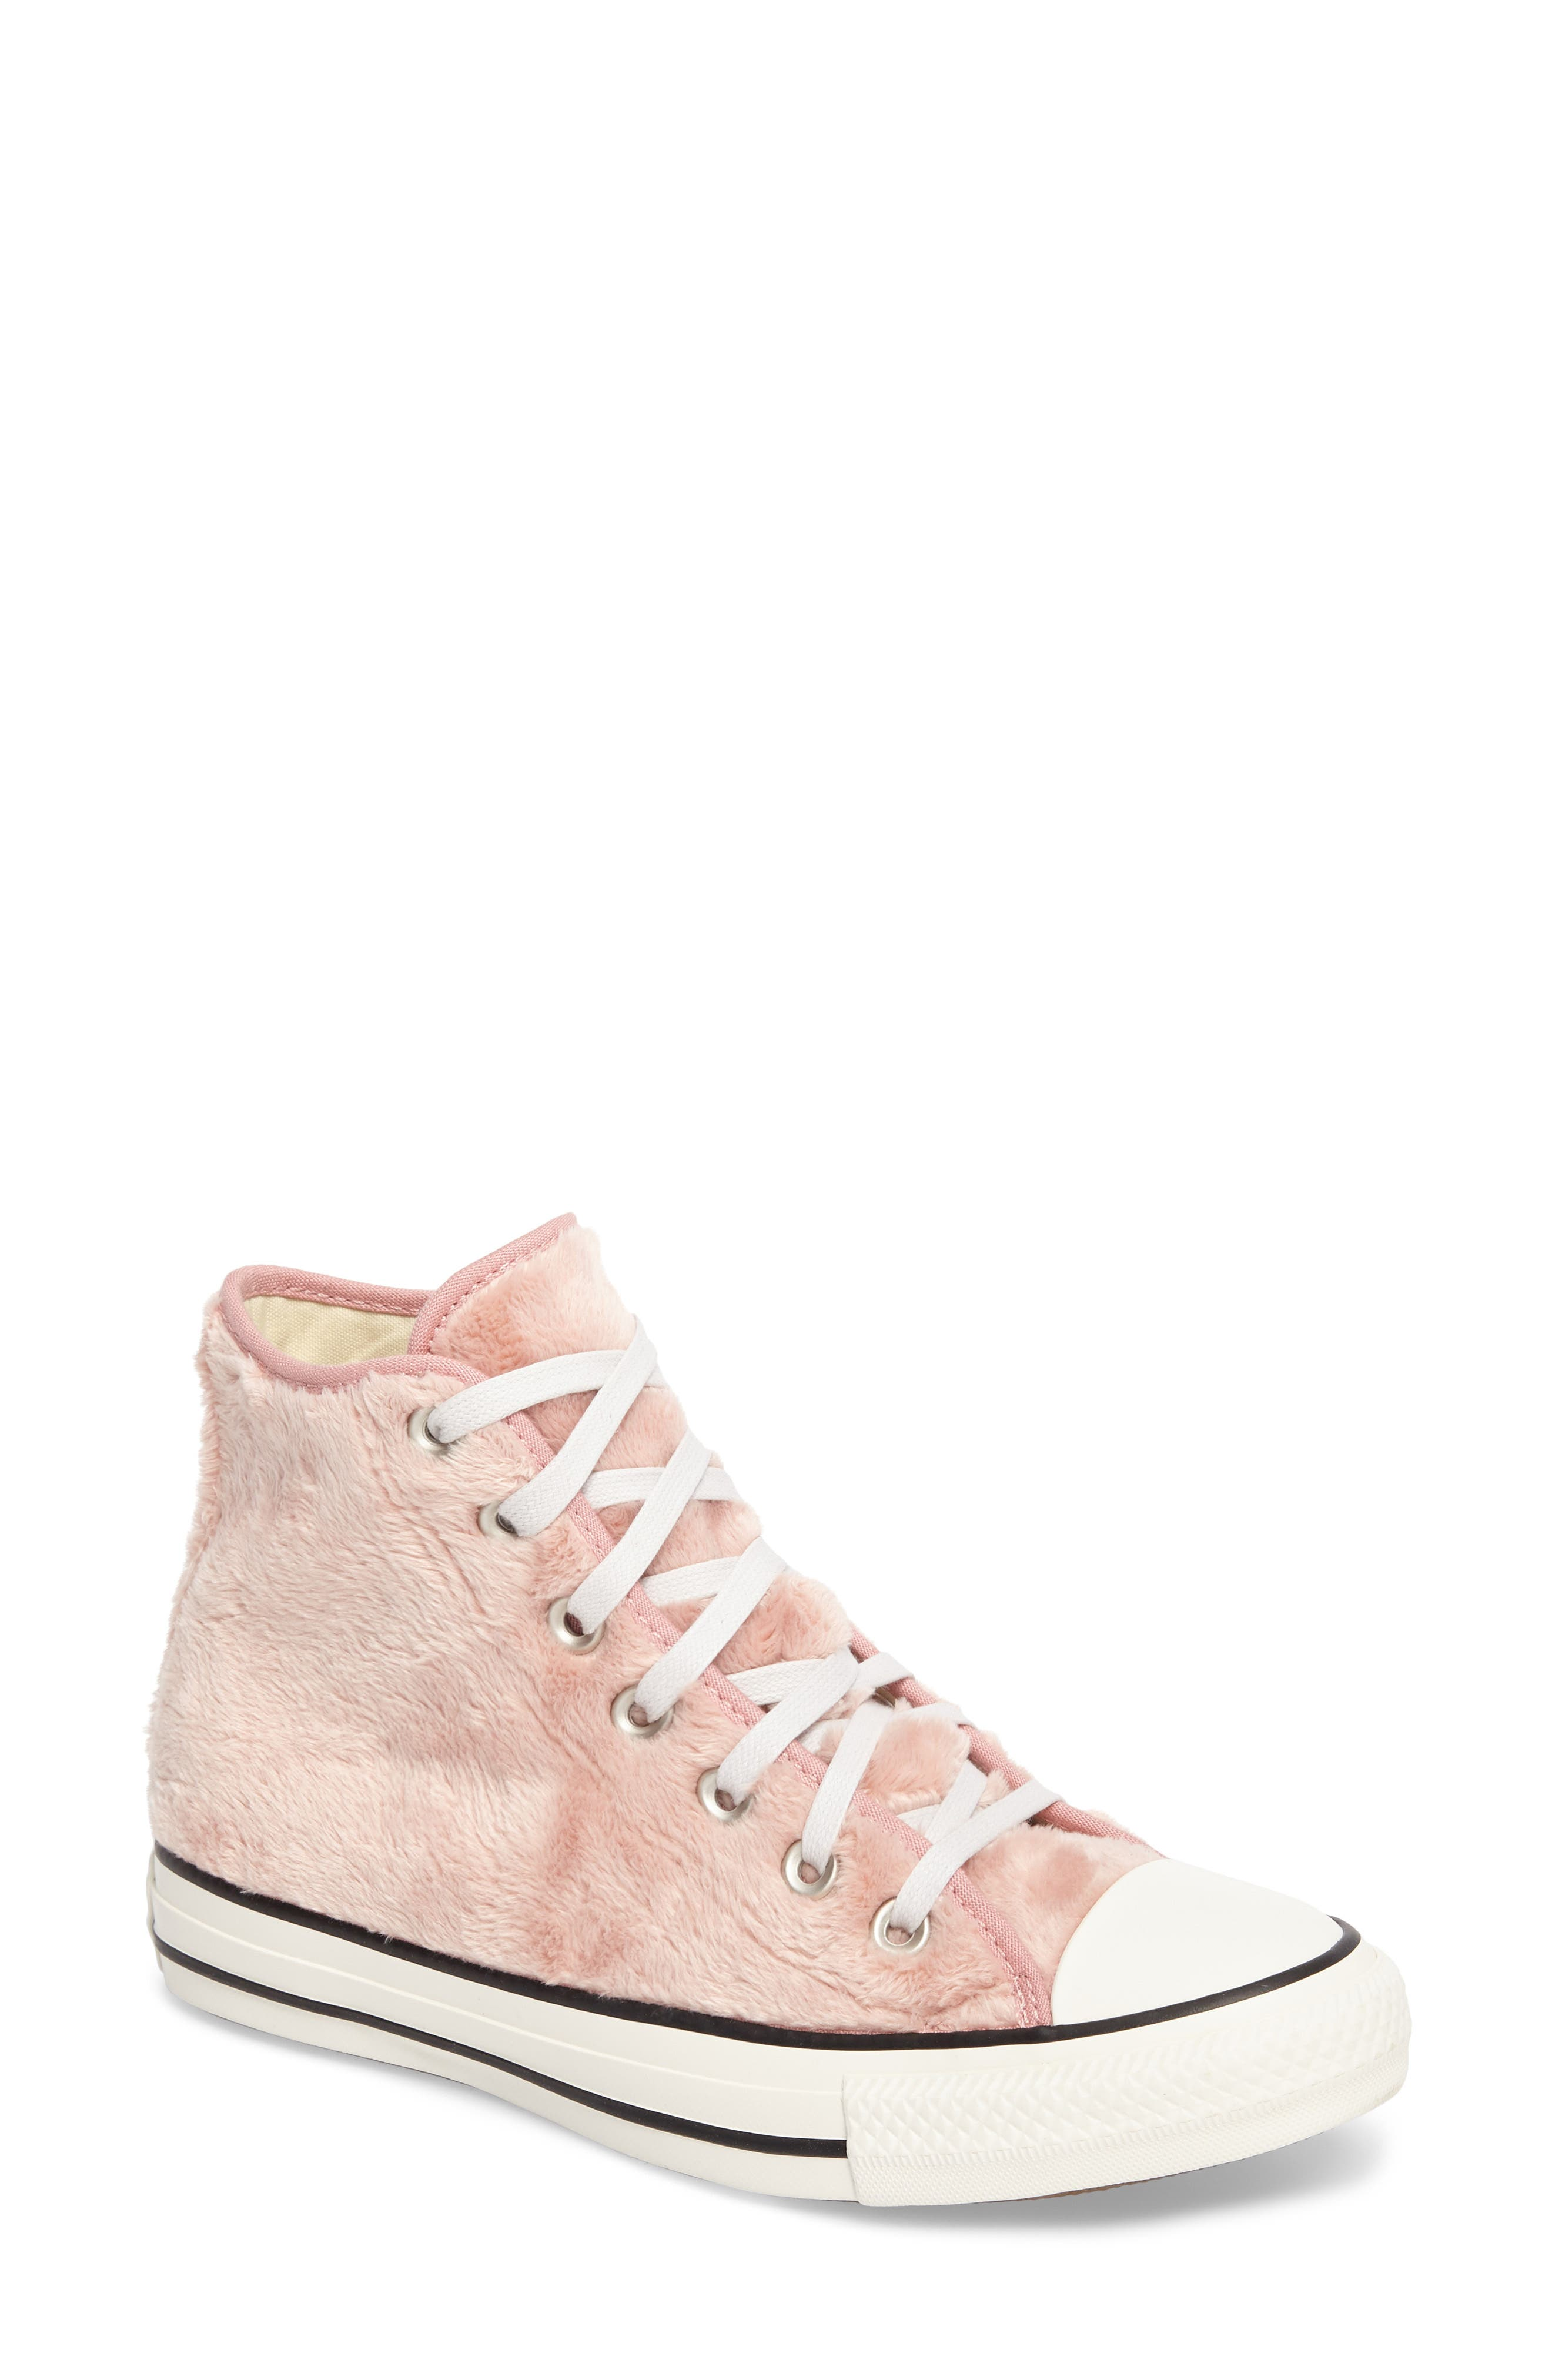 Converse Chuck Taylor® All Star® Faux Fur High Top Sneakers (Women)